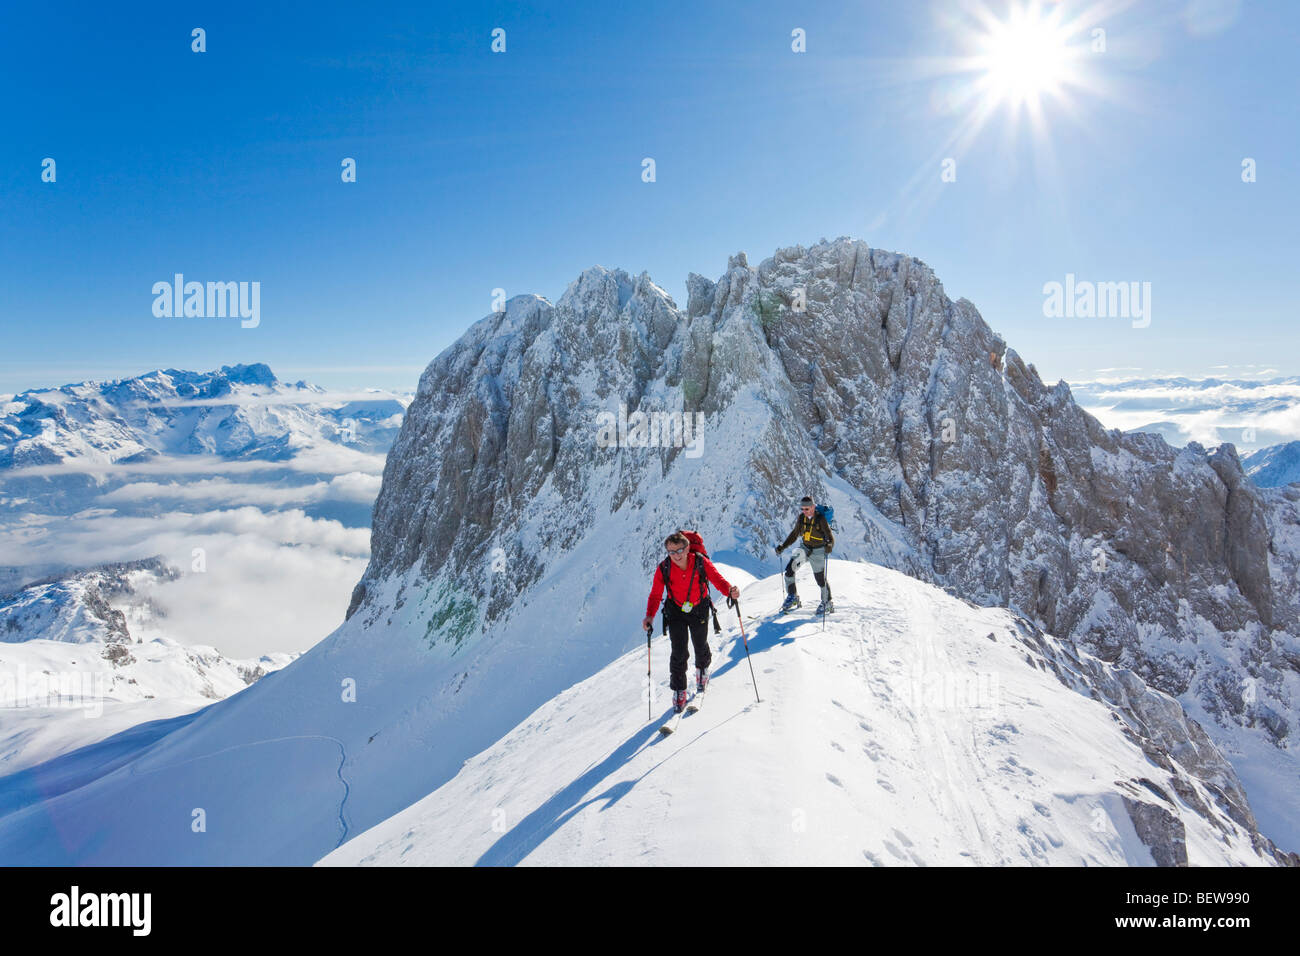 two men ski touring in the mountains, Salzburg, Austria - Stock Image